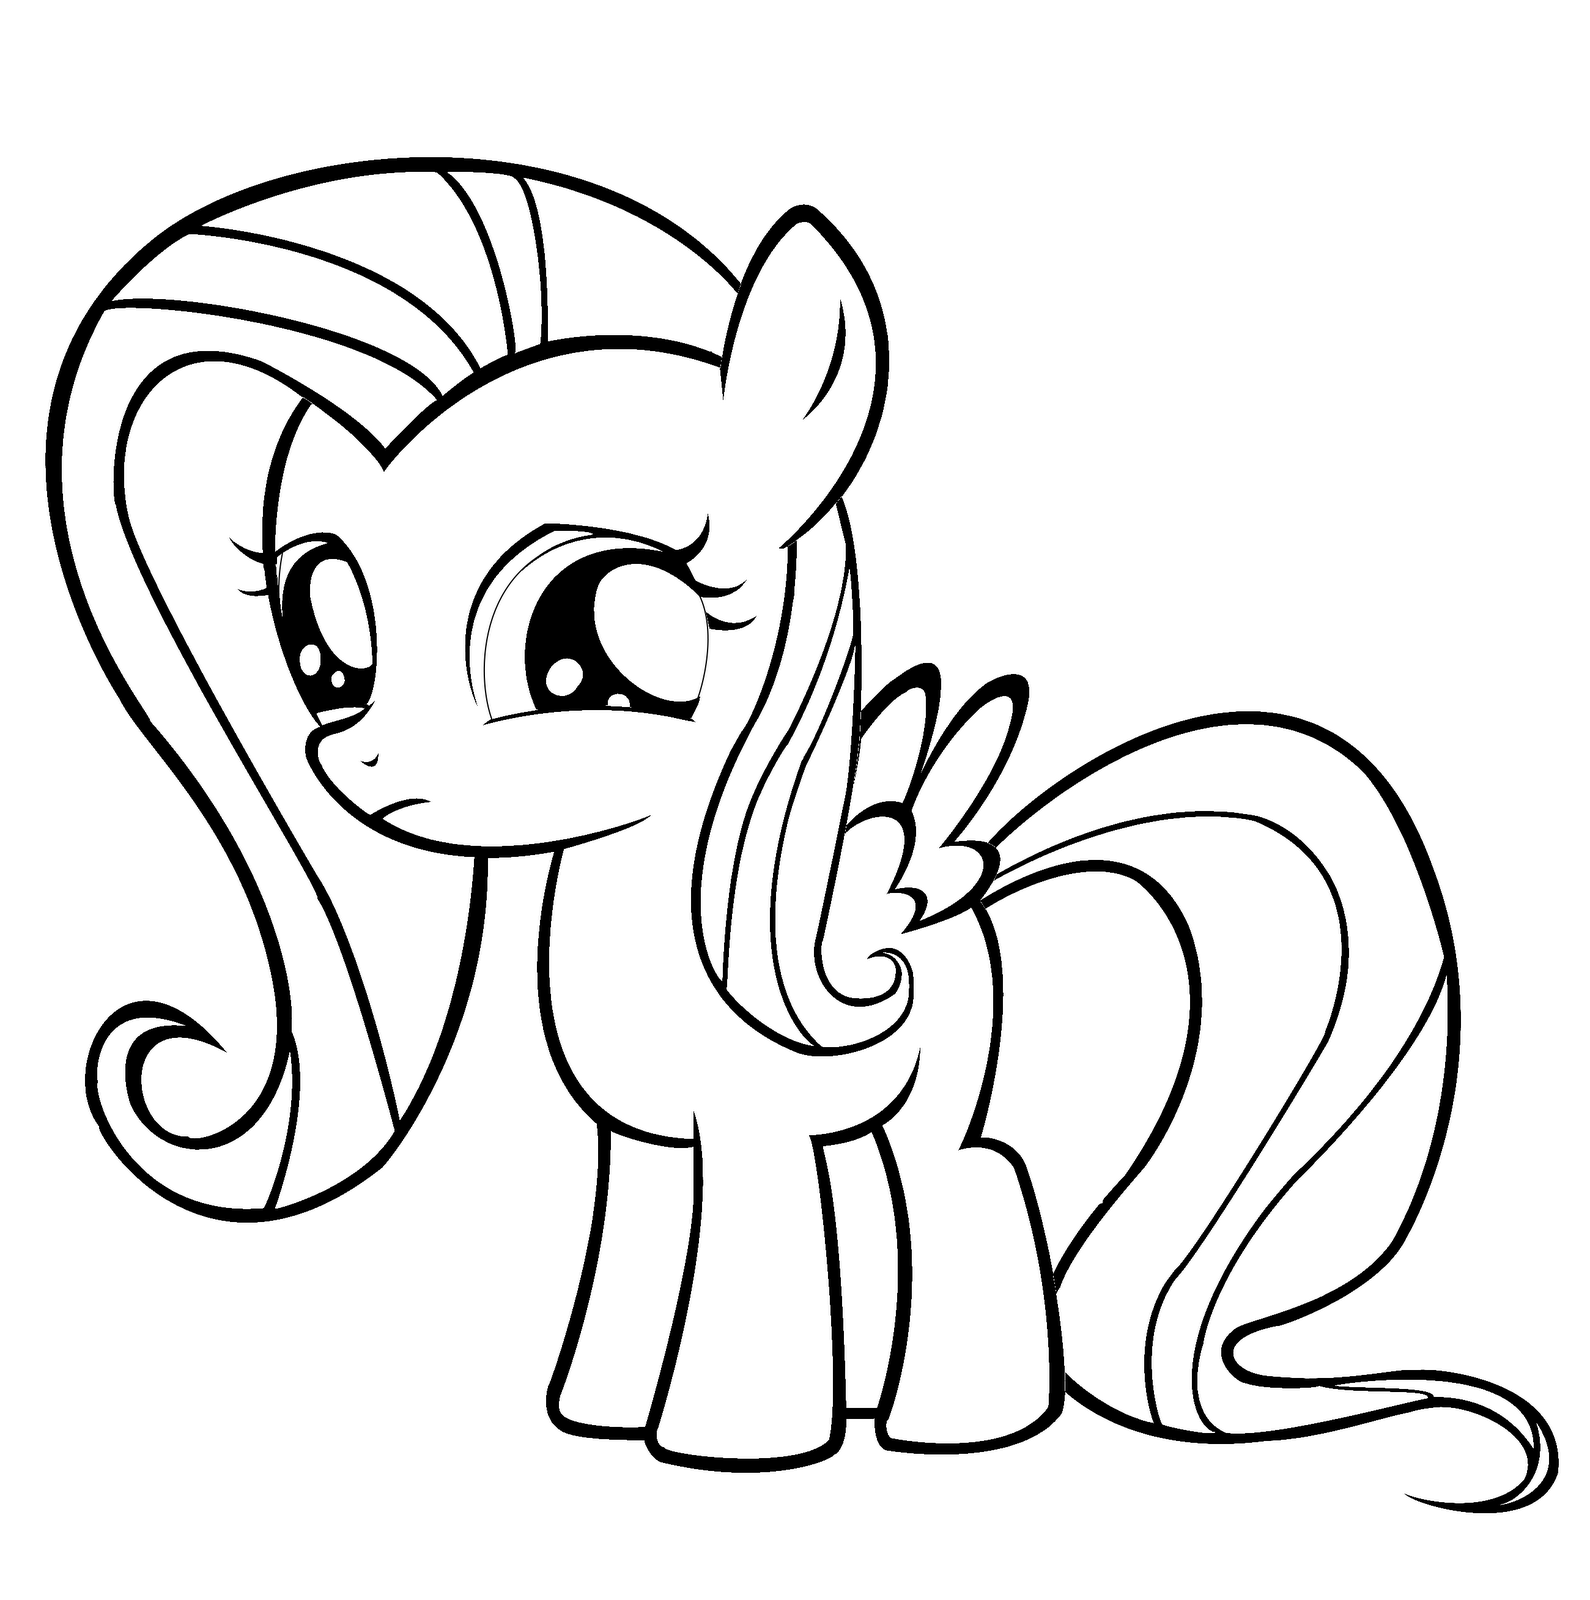 my little pony baby coloring pages my little pony applejack coloring pages team colors coloring pages baby my pony little